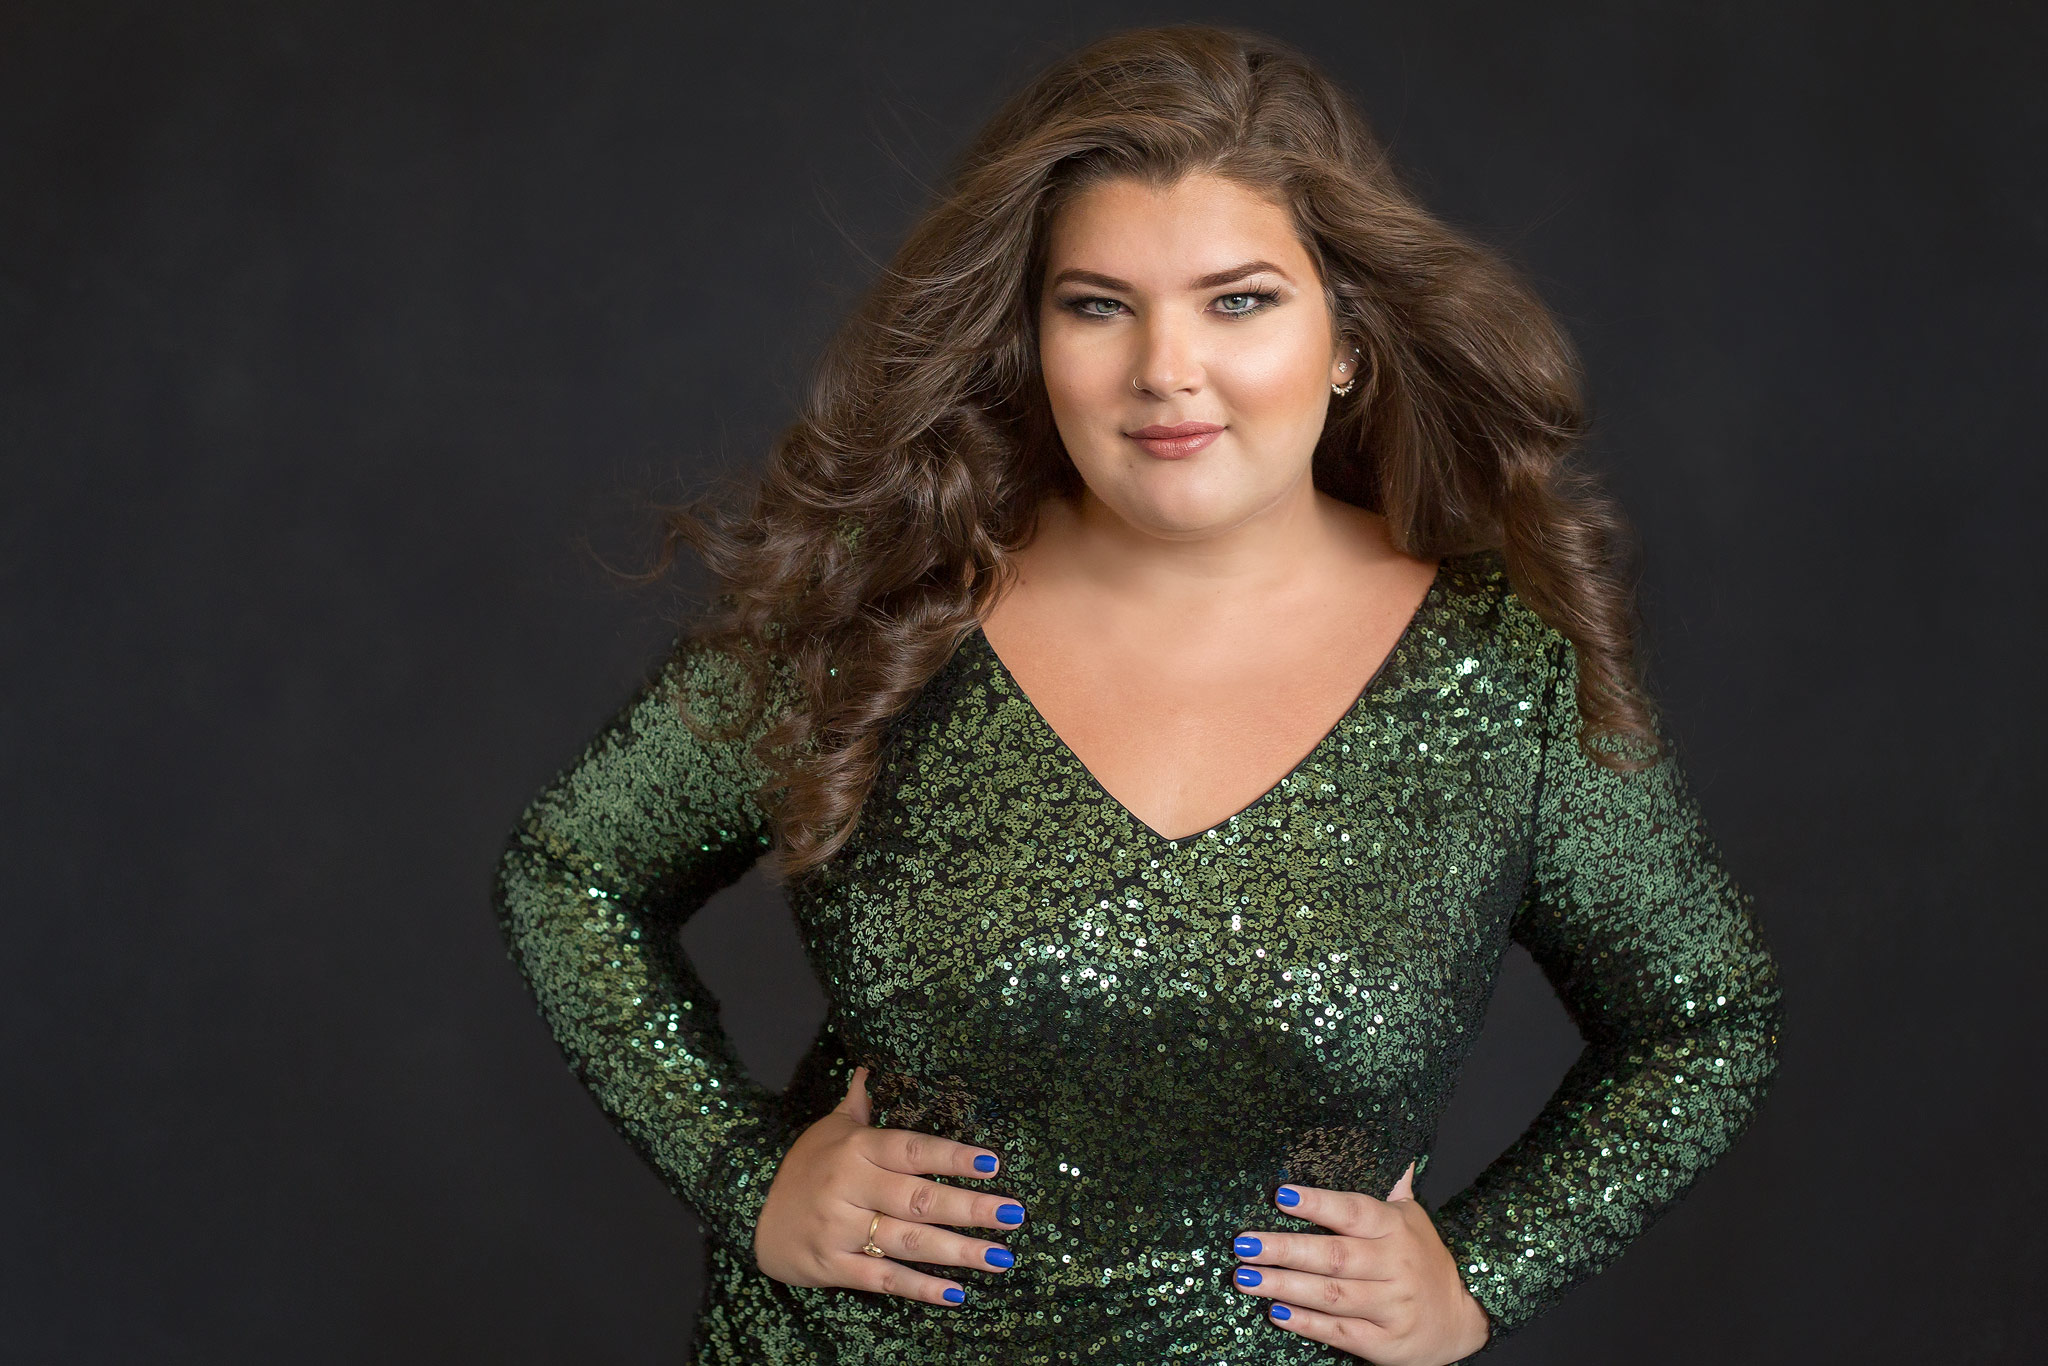 Green-sequins-dress-beauty-portrait-Carole-B-Eves-Brittany-curves